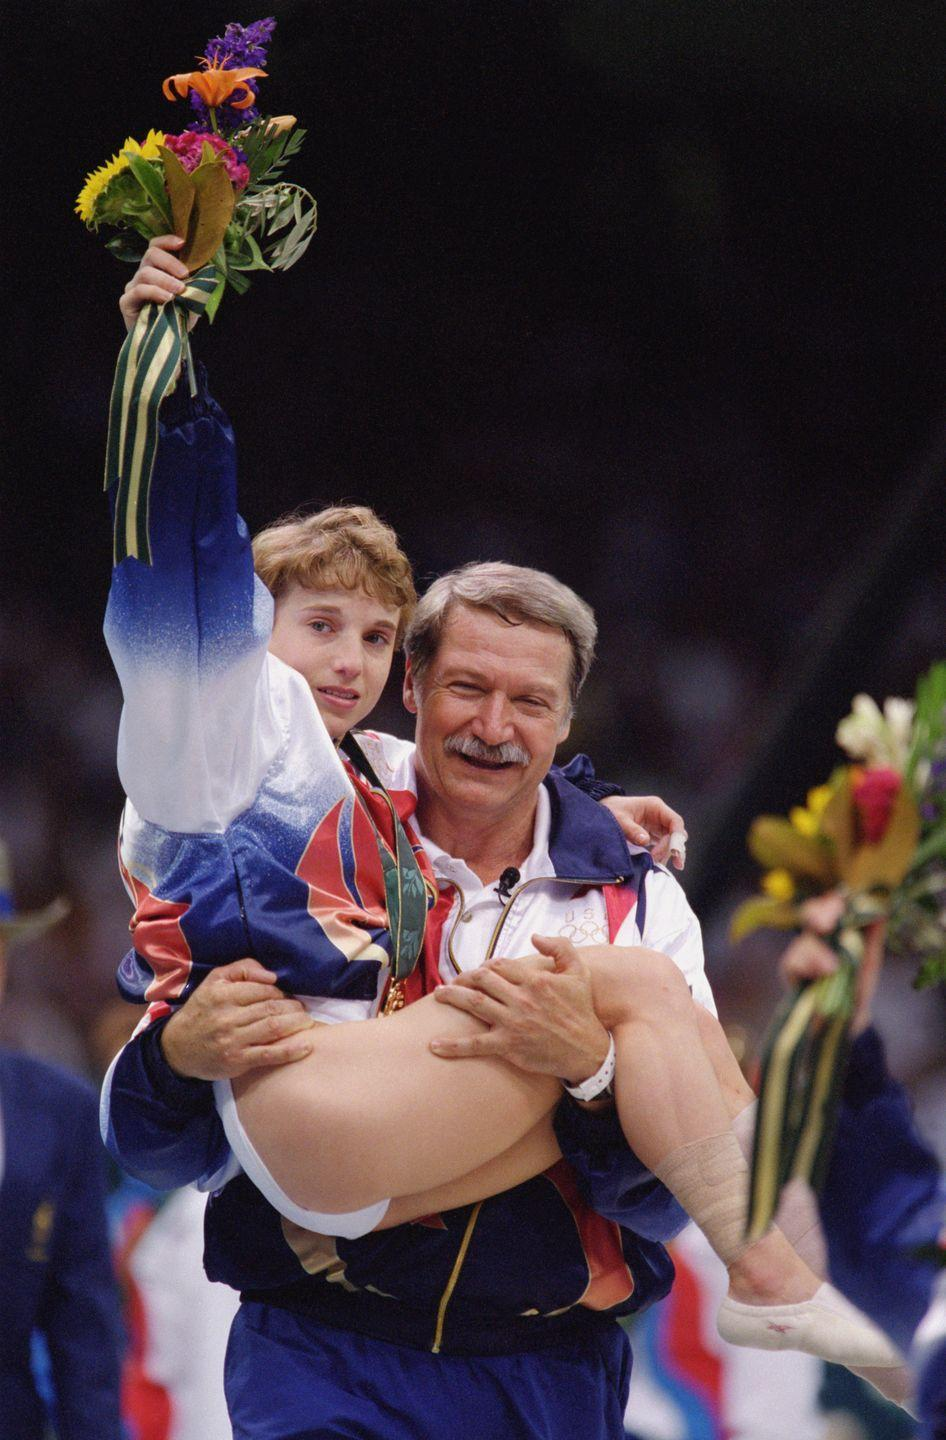 <p>Gymnast Kerri Strug helped the United States' Magnificent Seven clinch a win in the team all-around competition, even though it meant vaulting on an injured ankle. Coach Bela Karolyi carried her to the podium to claim her medal. </p>